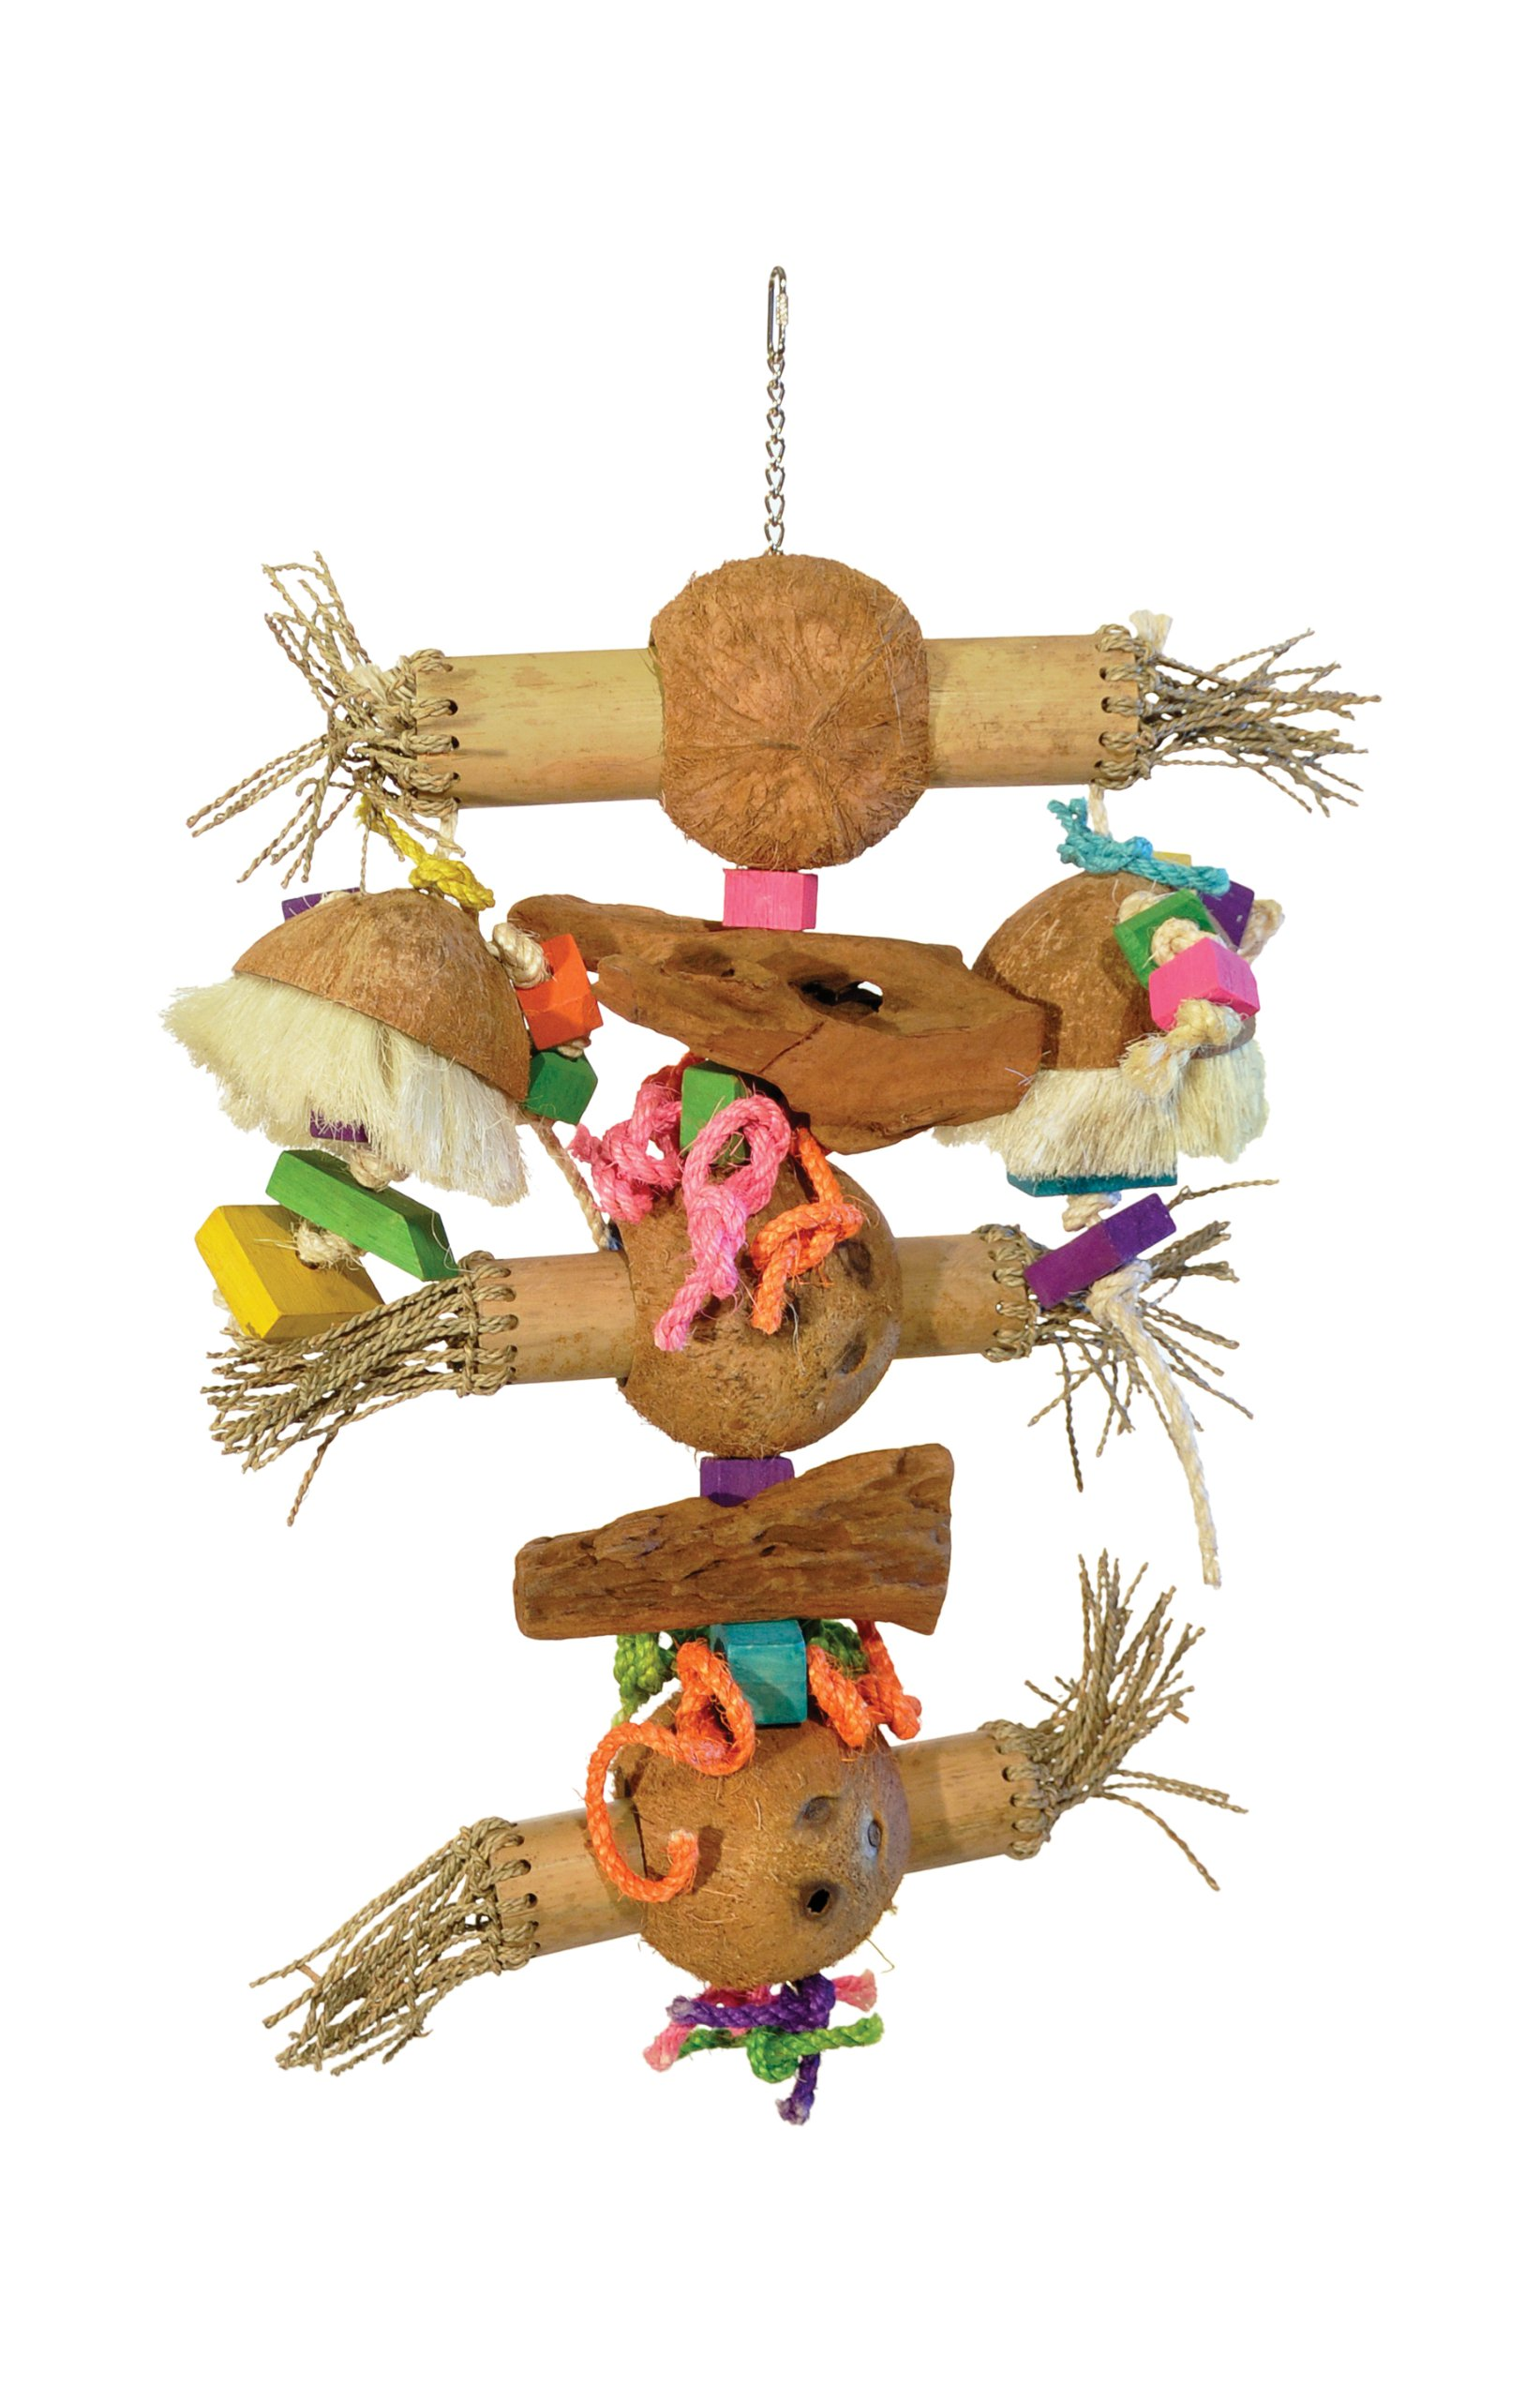 Prevue Pet Products 62474 Bodacious Bites Bamboo Shoots Bird Toy by Prevue Pet Products